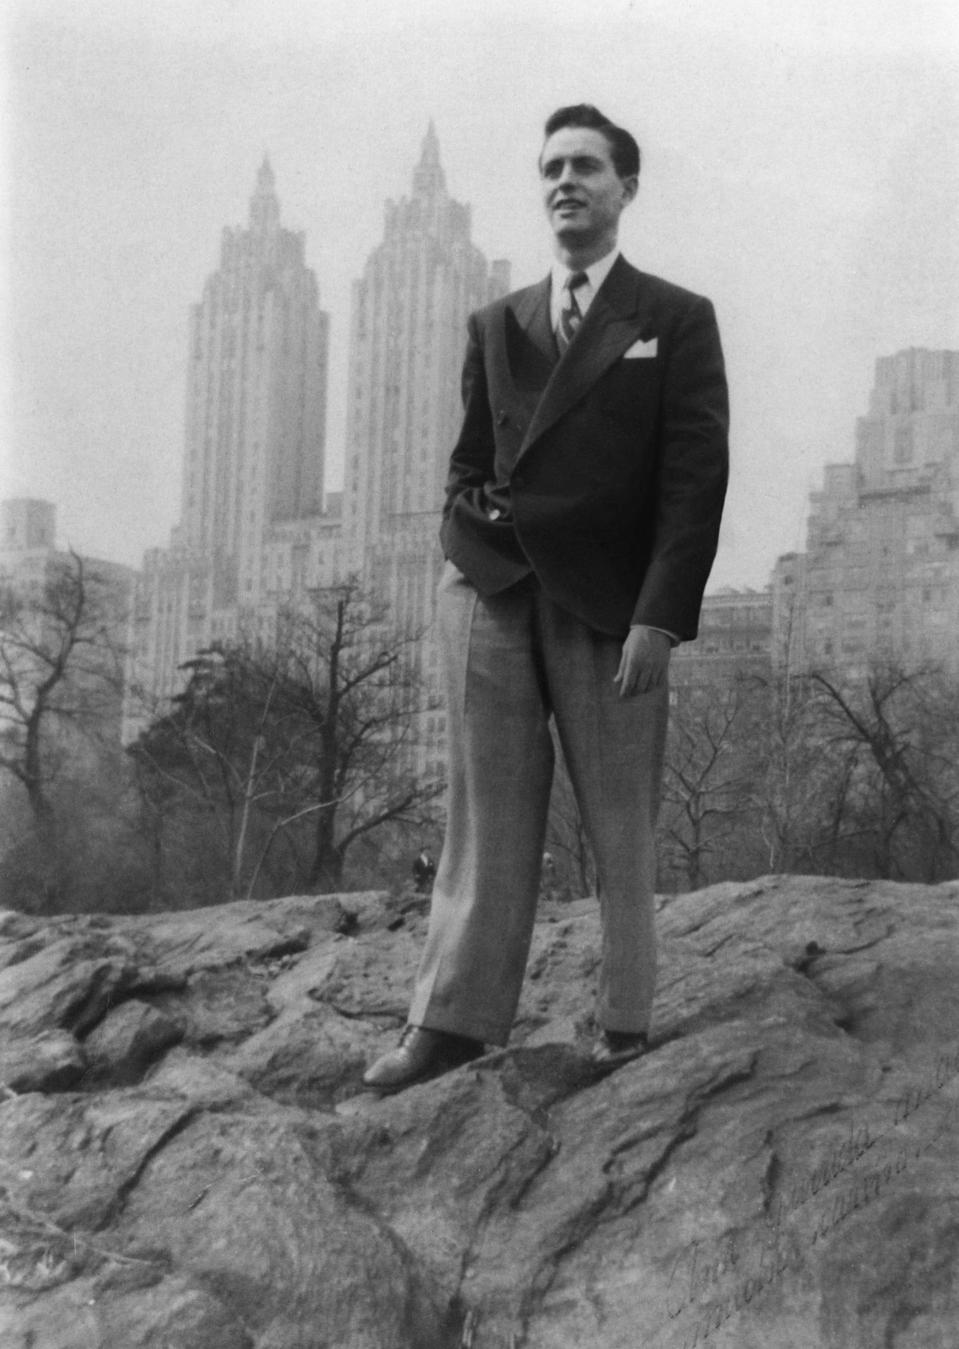 A black and white image of the young Jean Leon in New York City in the 1950s.